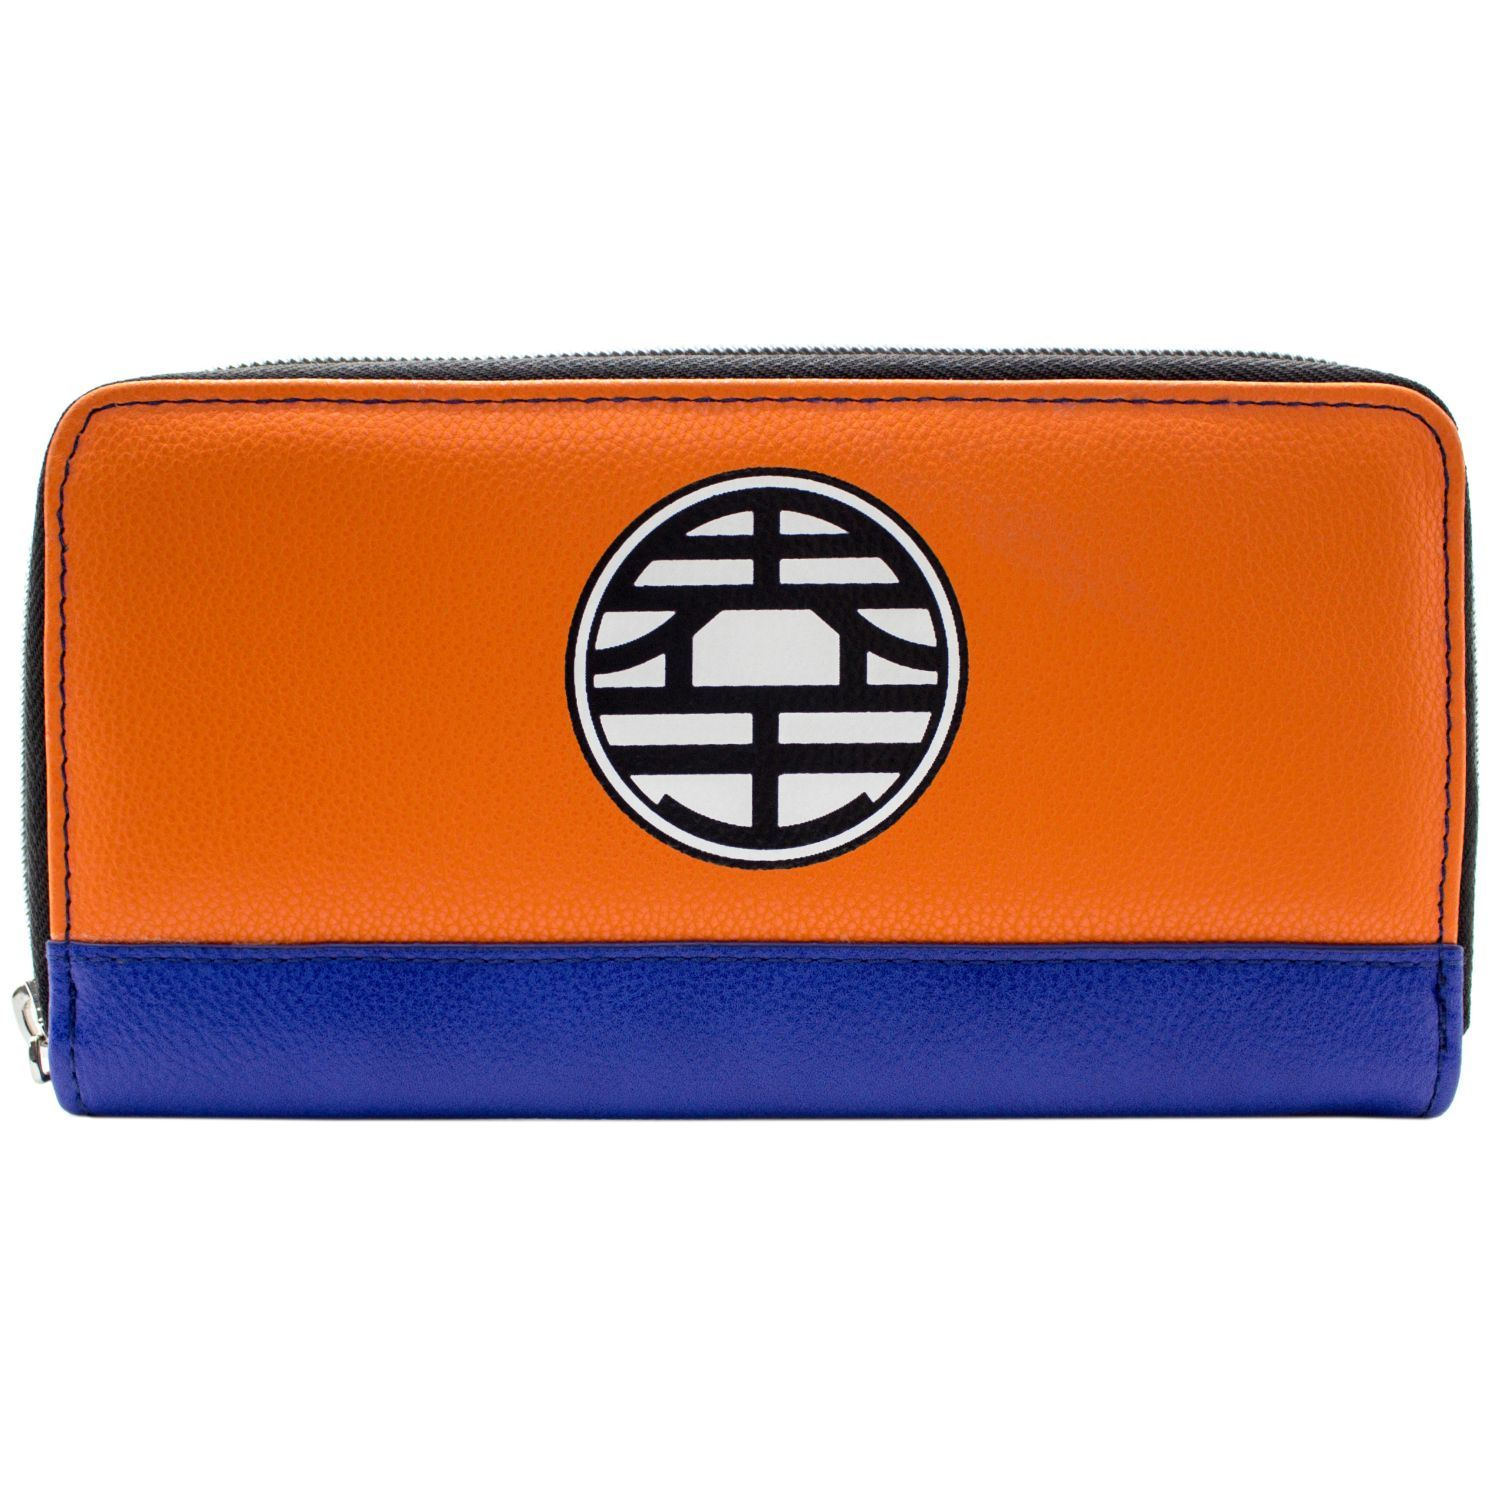 Official Dragon Ball Z Kame Symbols Orange Coin /& Card Clutch Purse *SECOND*